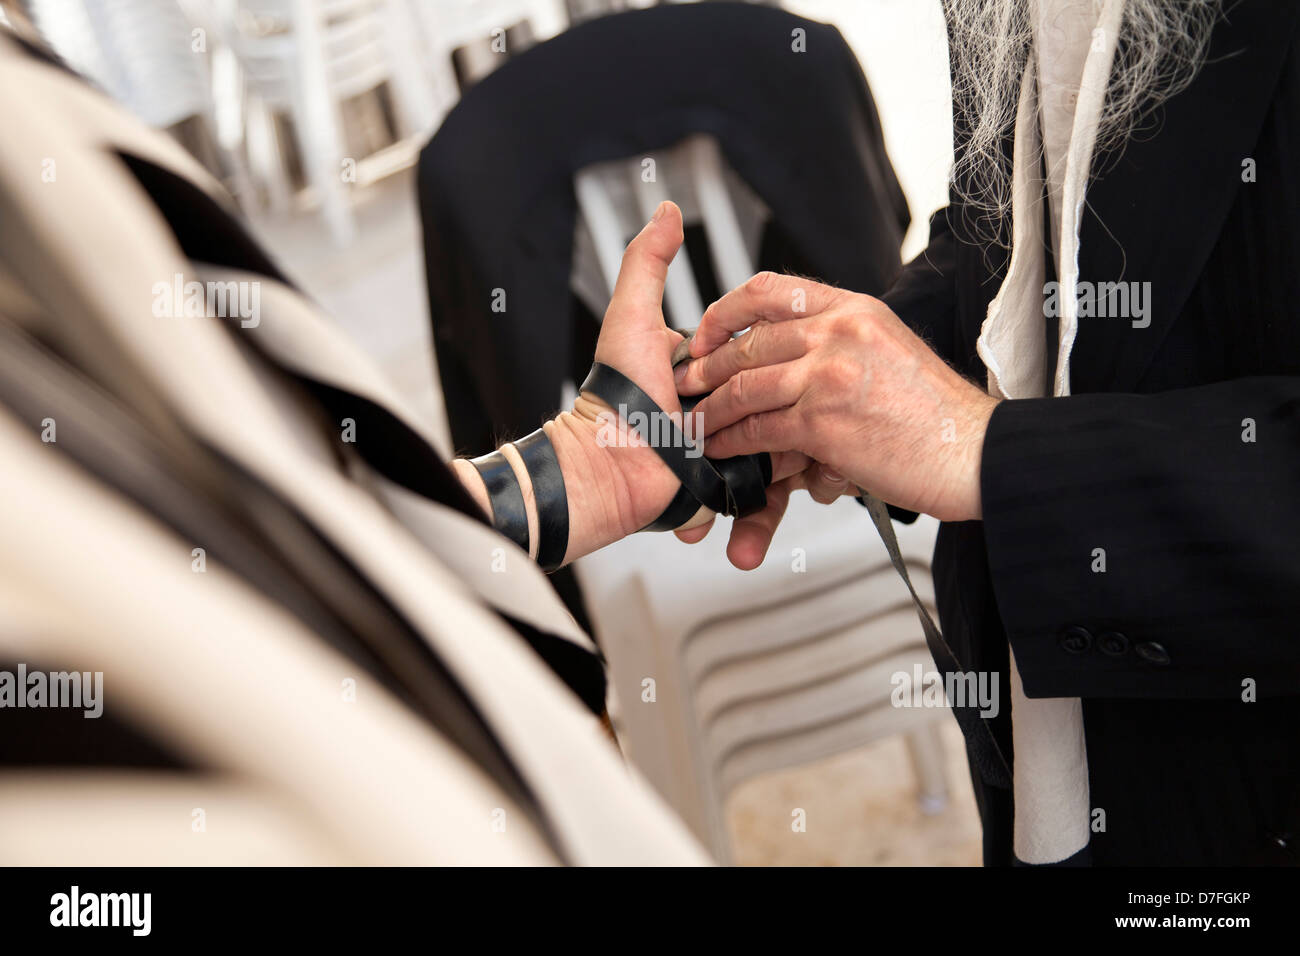 The hand an adult Caucasian man is being wrapped in leather strap part Jewish phylacteries (Teffilin Tefilin Tfilin) - Stock Image